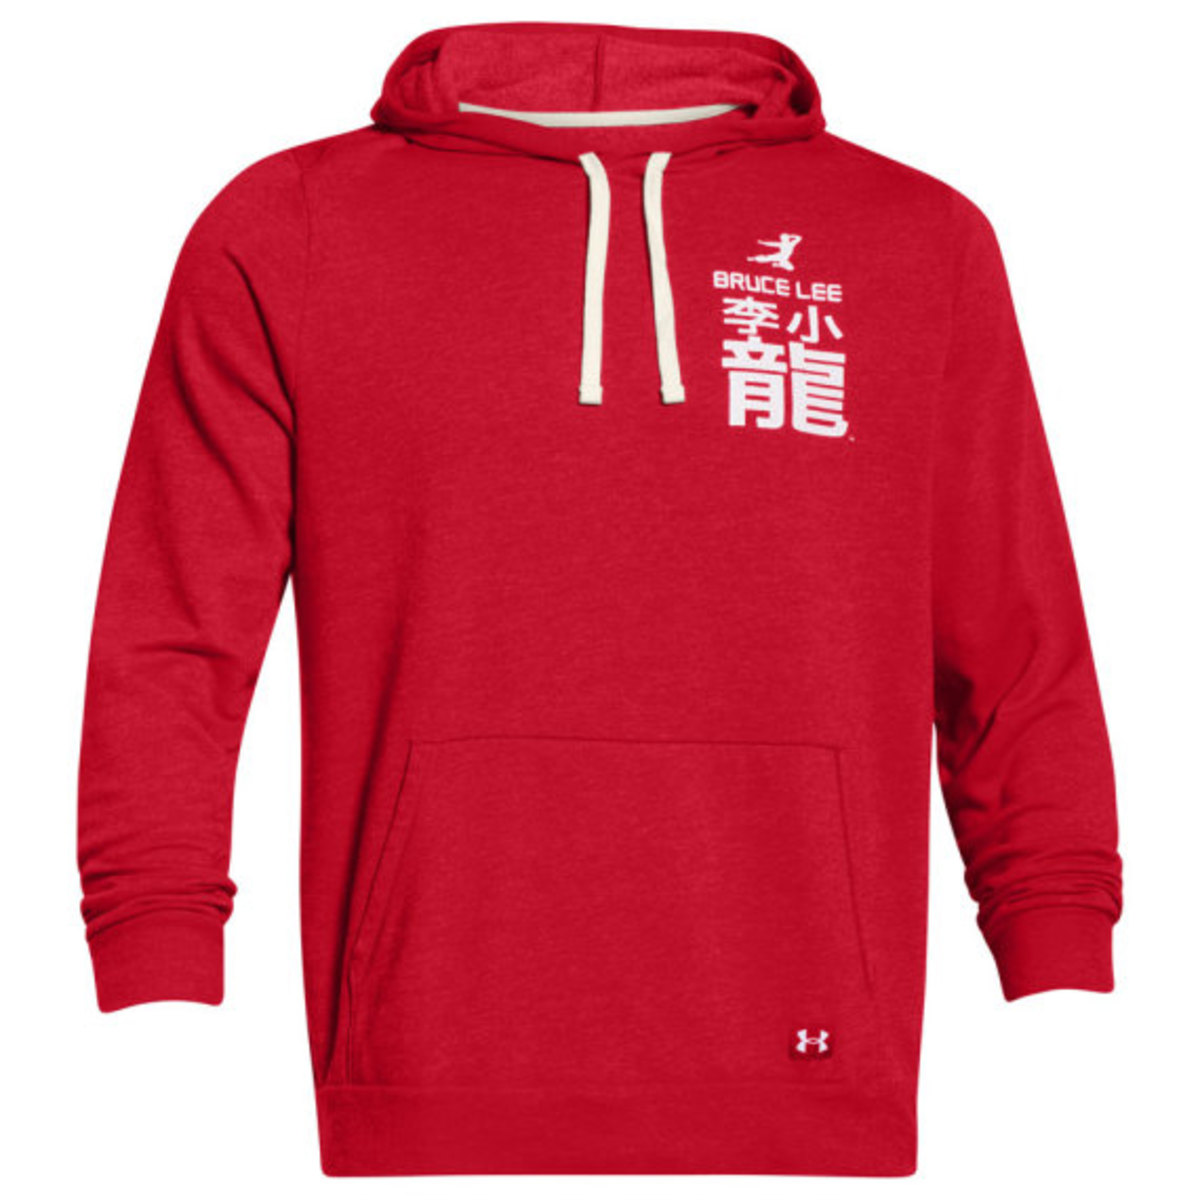 under-armour-roots-of-right-bruce-lee-collection-08